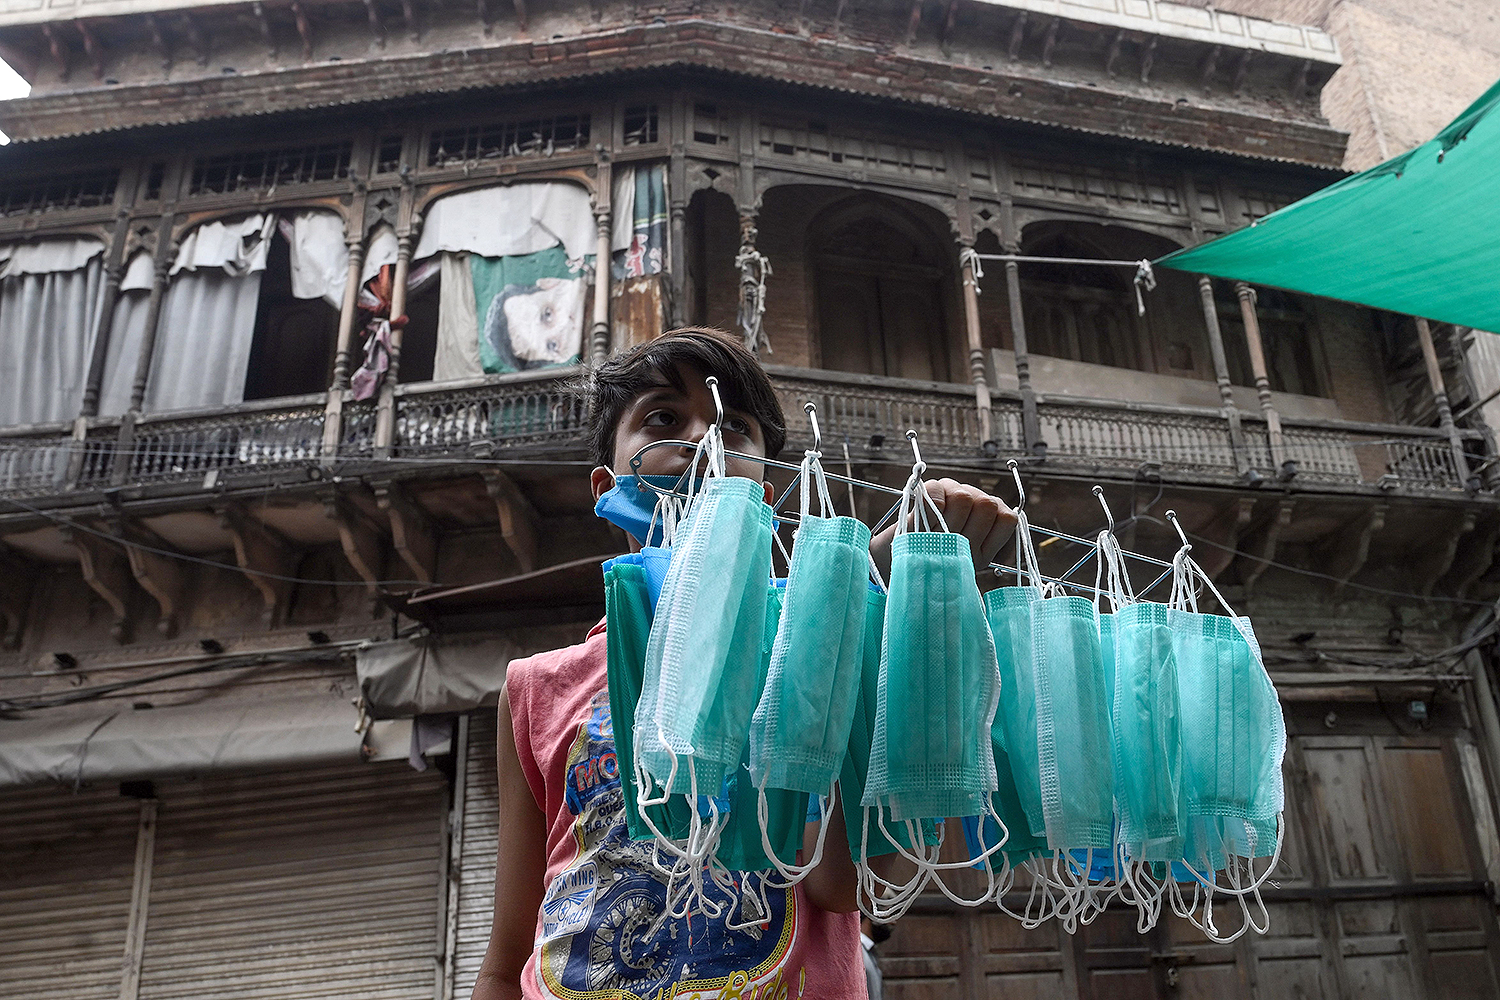 A young vendor sells face masks on a street in Lahore, Pakistan, on June 25 as coronavirus cases continue to rise. ARIF ALI/AFP via Getty Images